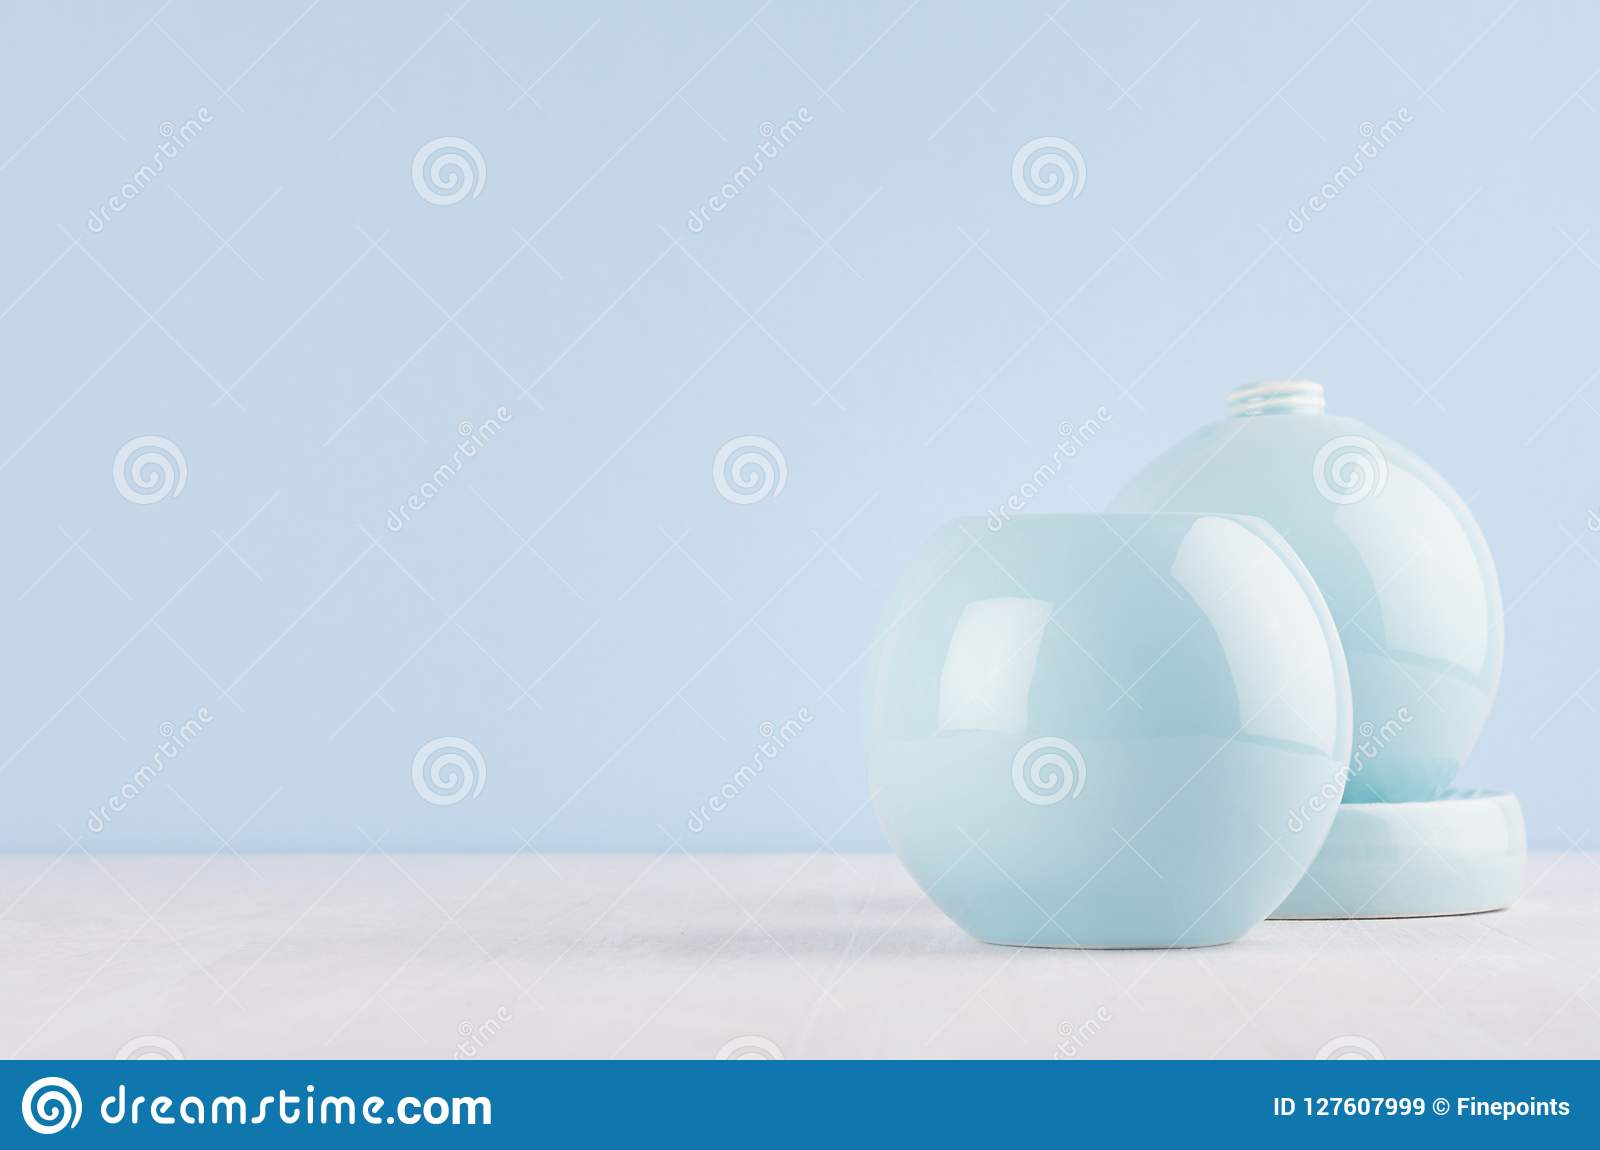 Fashion home decor in modern elegant style - light soft blue ceramic circle vases on white wood background.